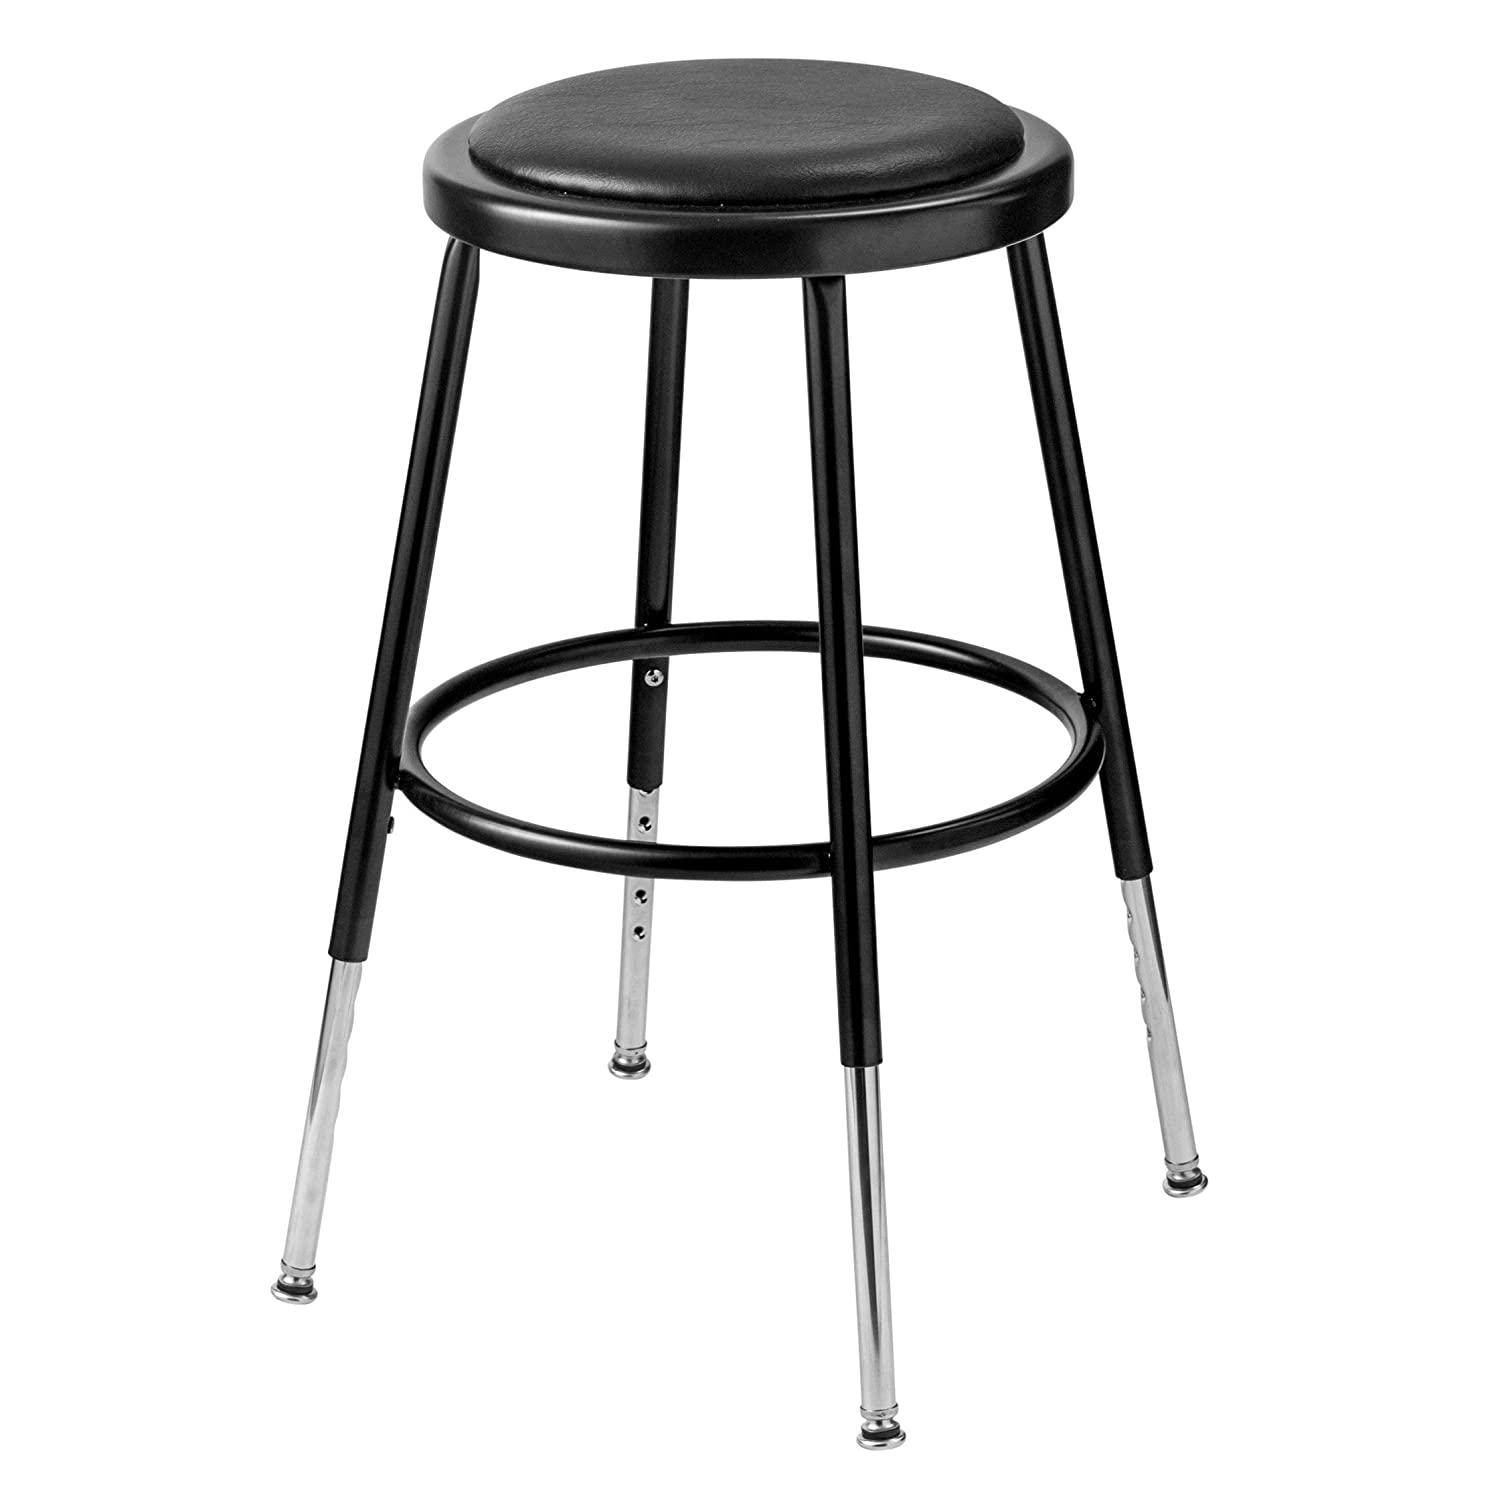 National Public Seating Height Adjustable Stool with Footring Size 32.5 H, Finish Black